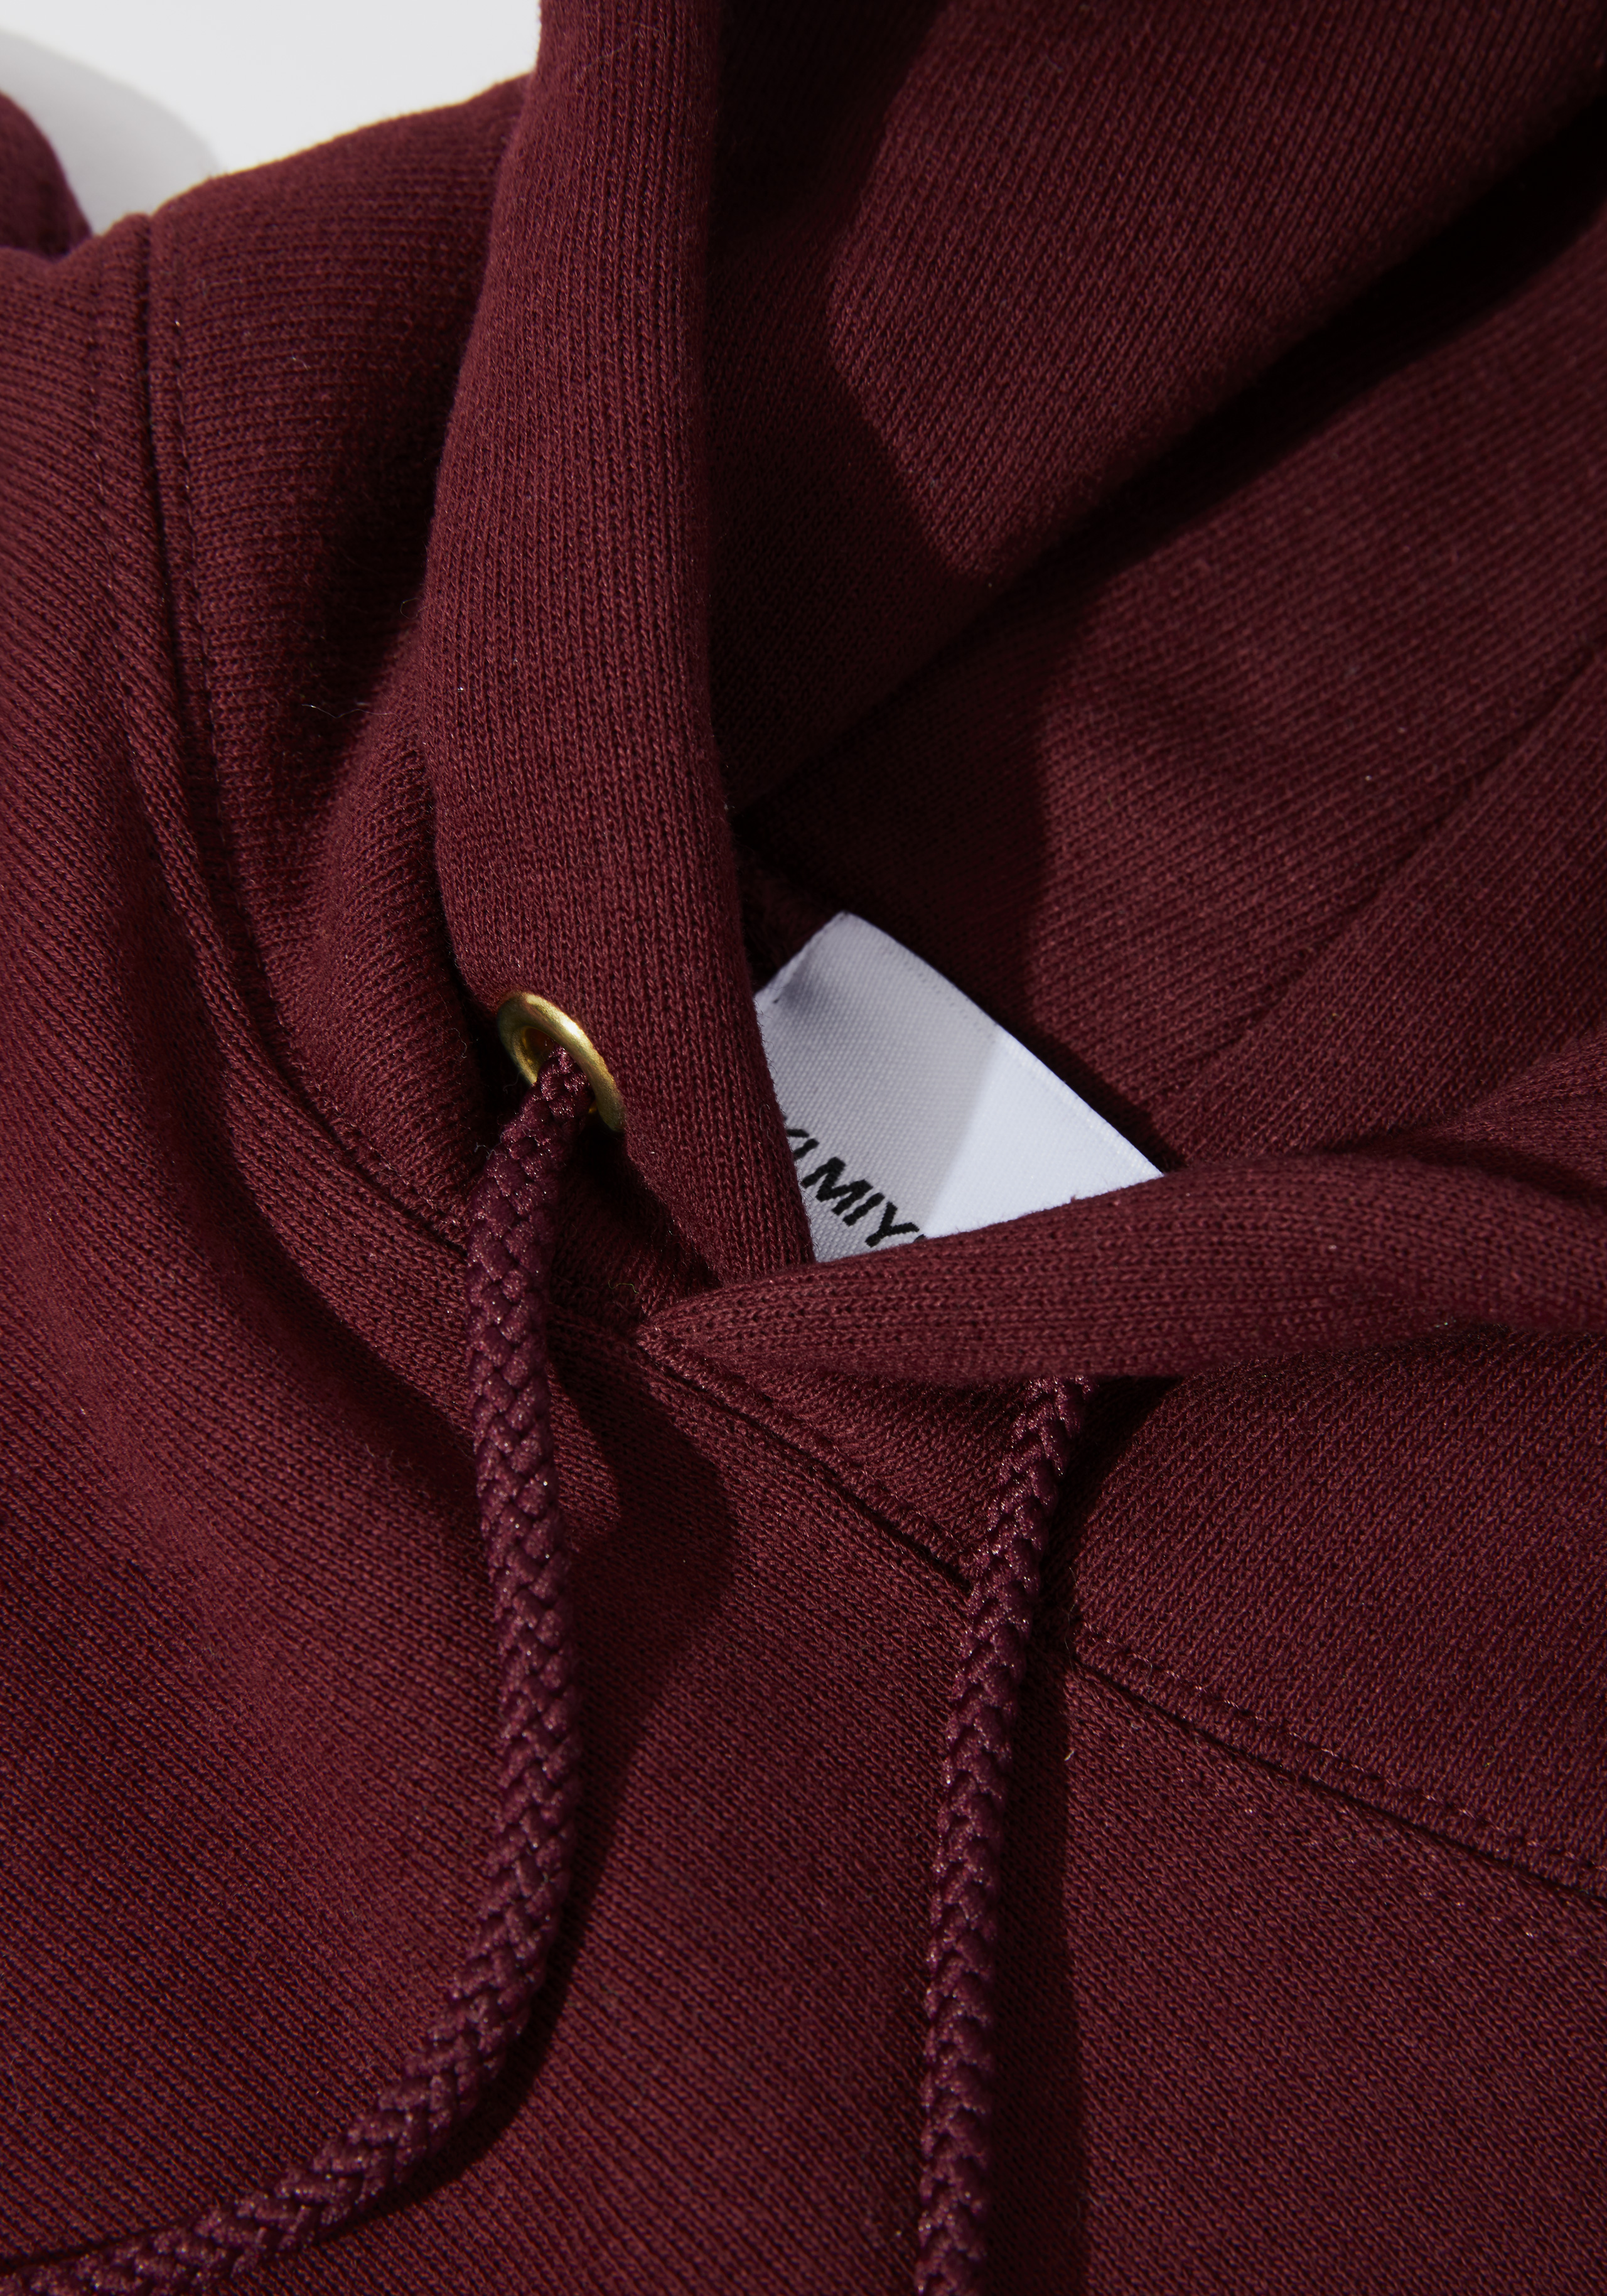 mki 12oz hoody made in usa 3